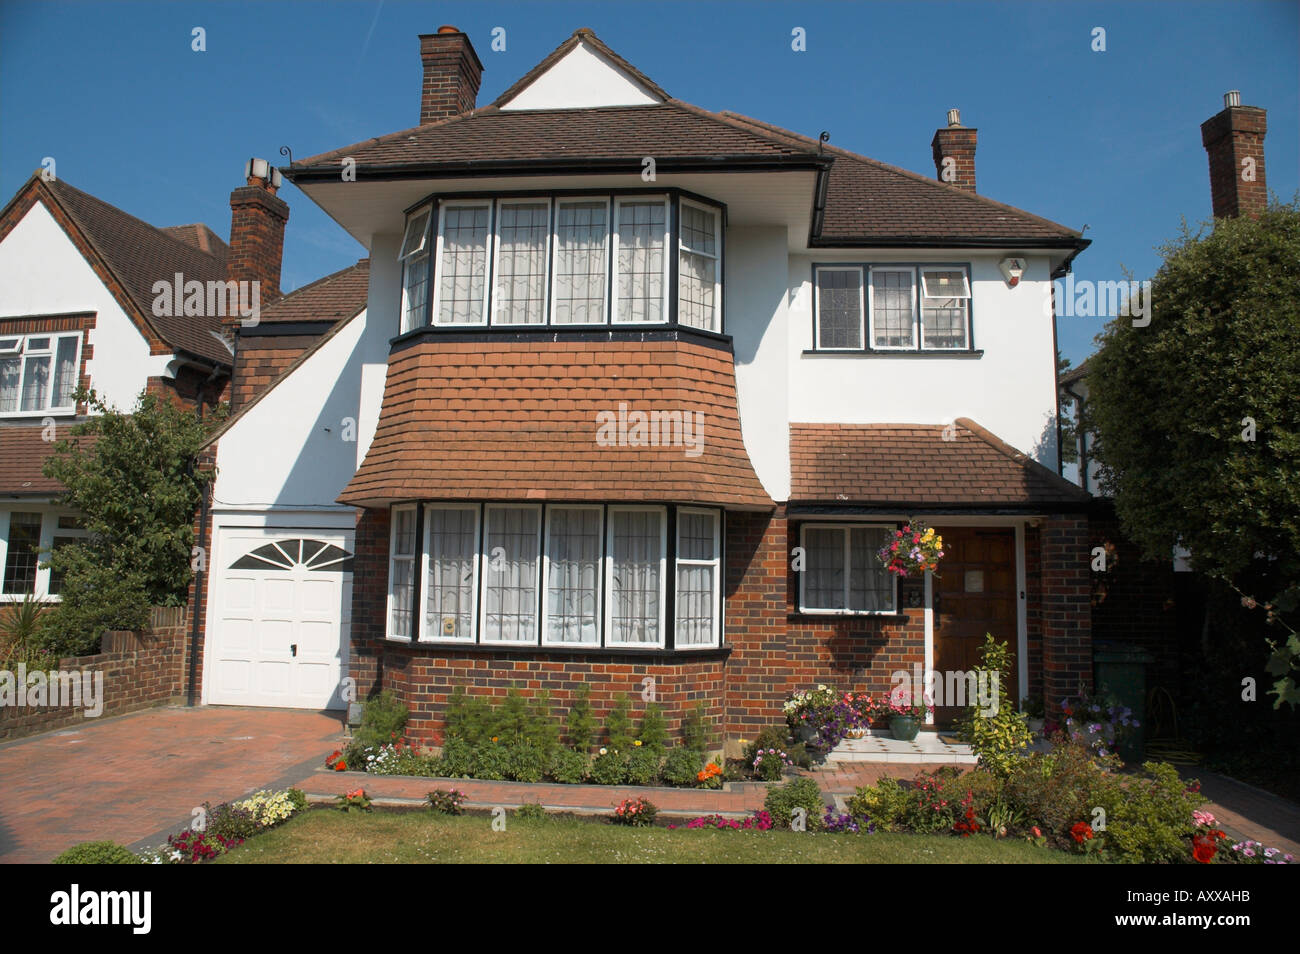 Superb 1930S House Stock Photos 1930S House Stock Images Alamy Interior Design Ideas Tzicisoteloinfo